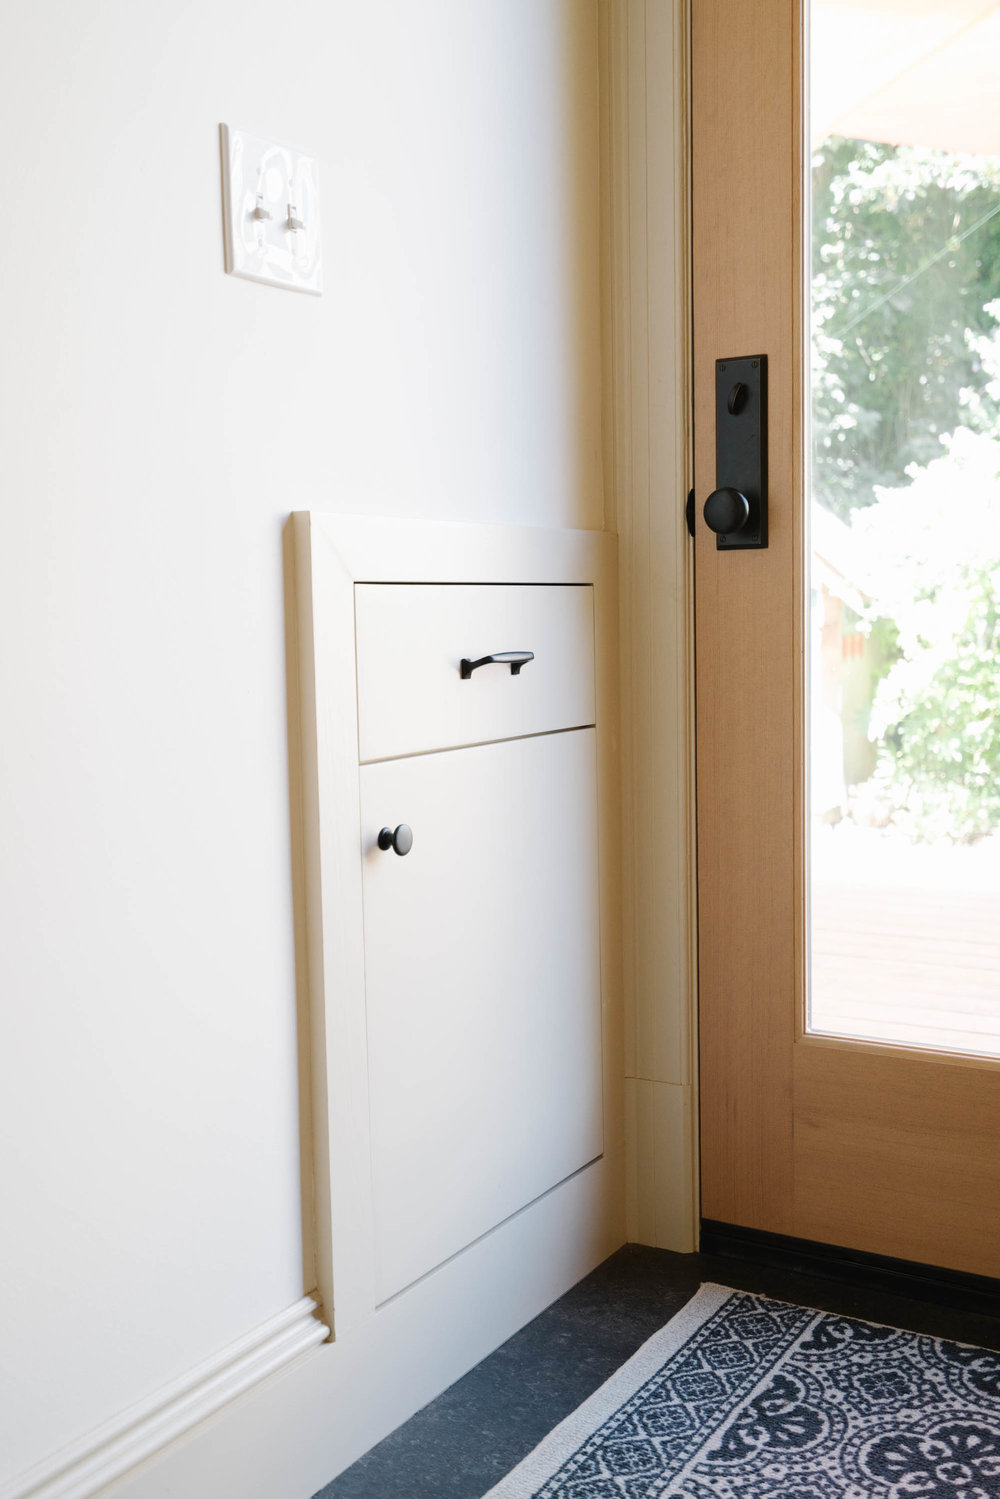 A new built-in cabinet for shoe storage and drawer for gloves is conveniently located in the mudporch. This feature recesses into the kitchen cabinet run, utilizing the typically wasted space in a lower corner cabinet.